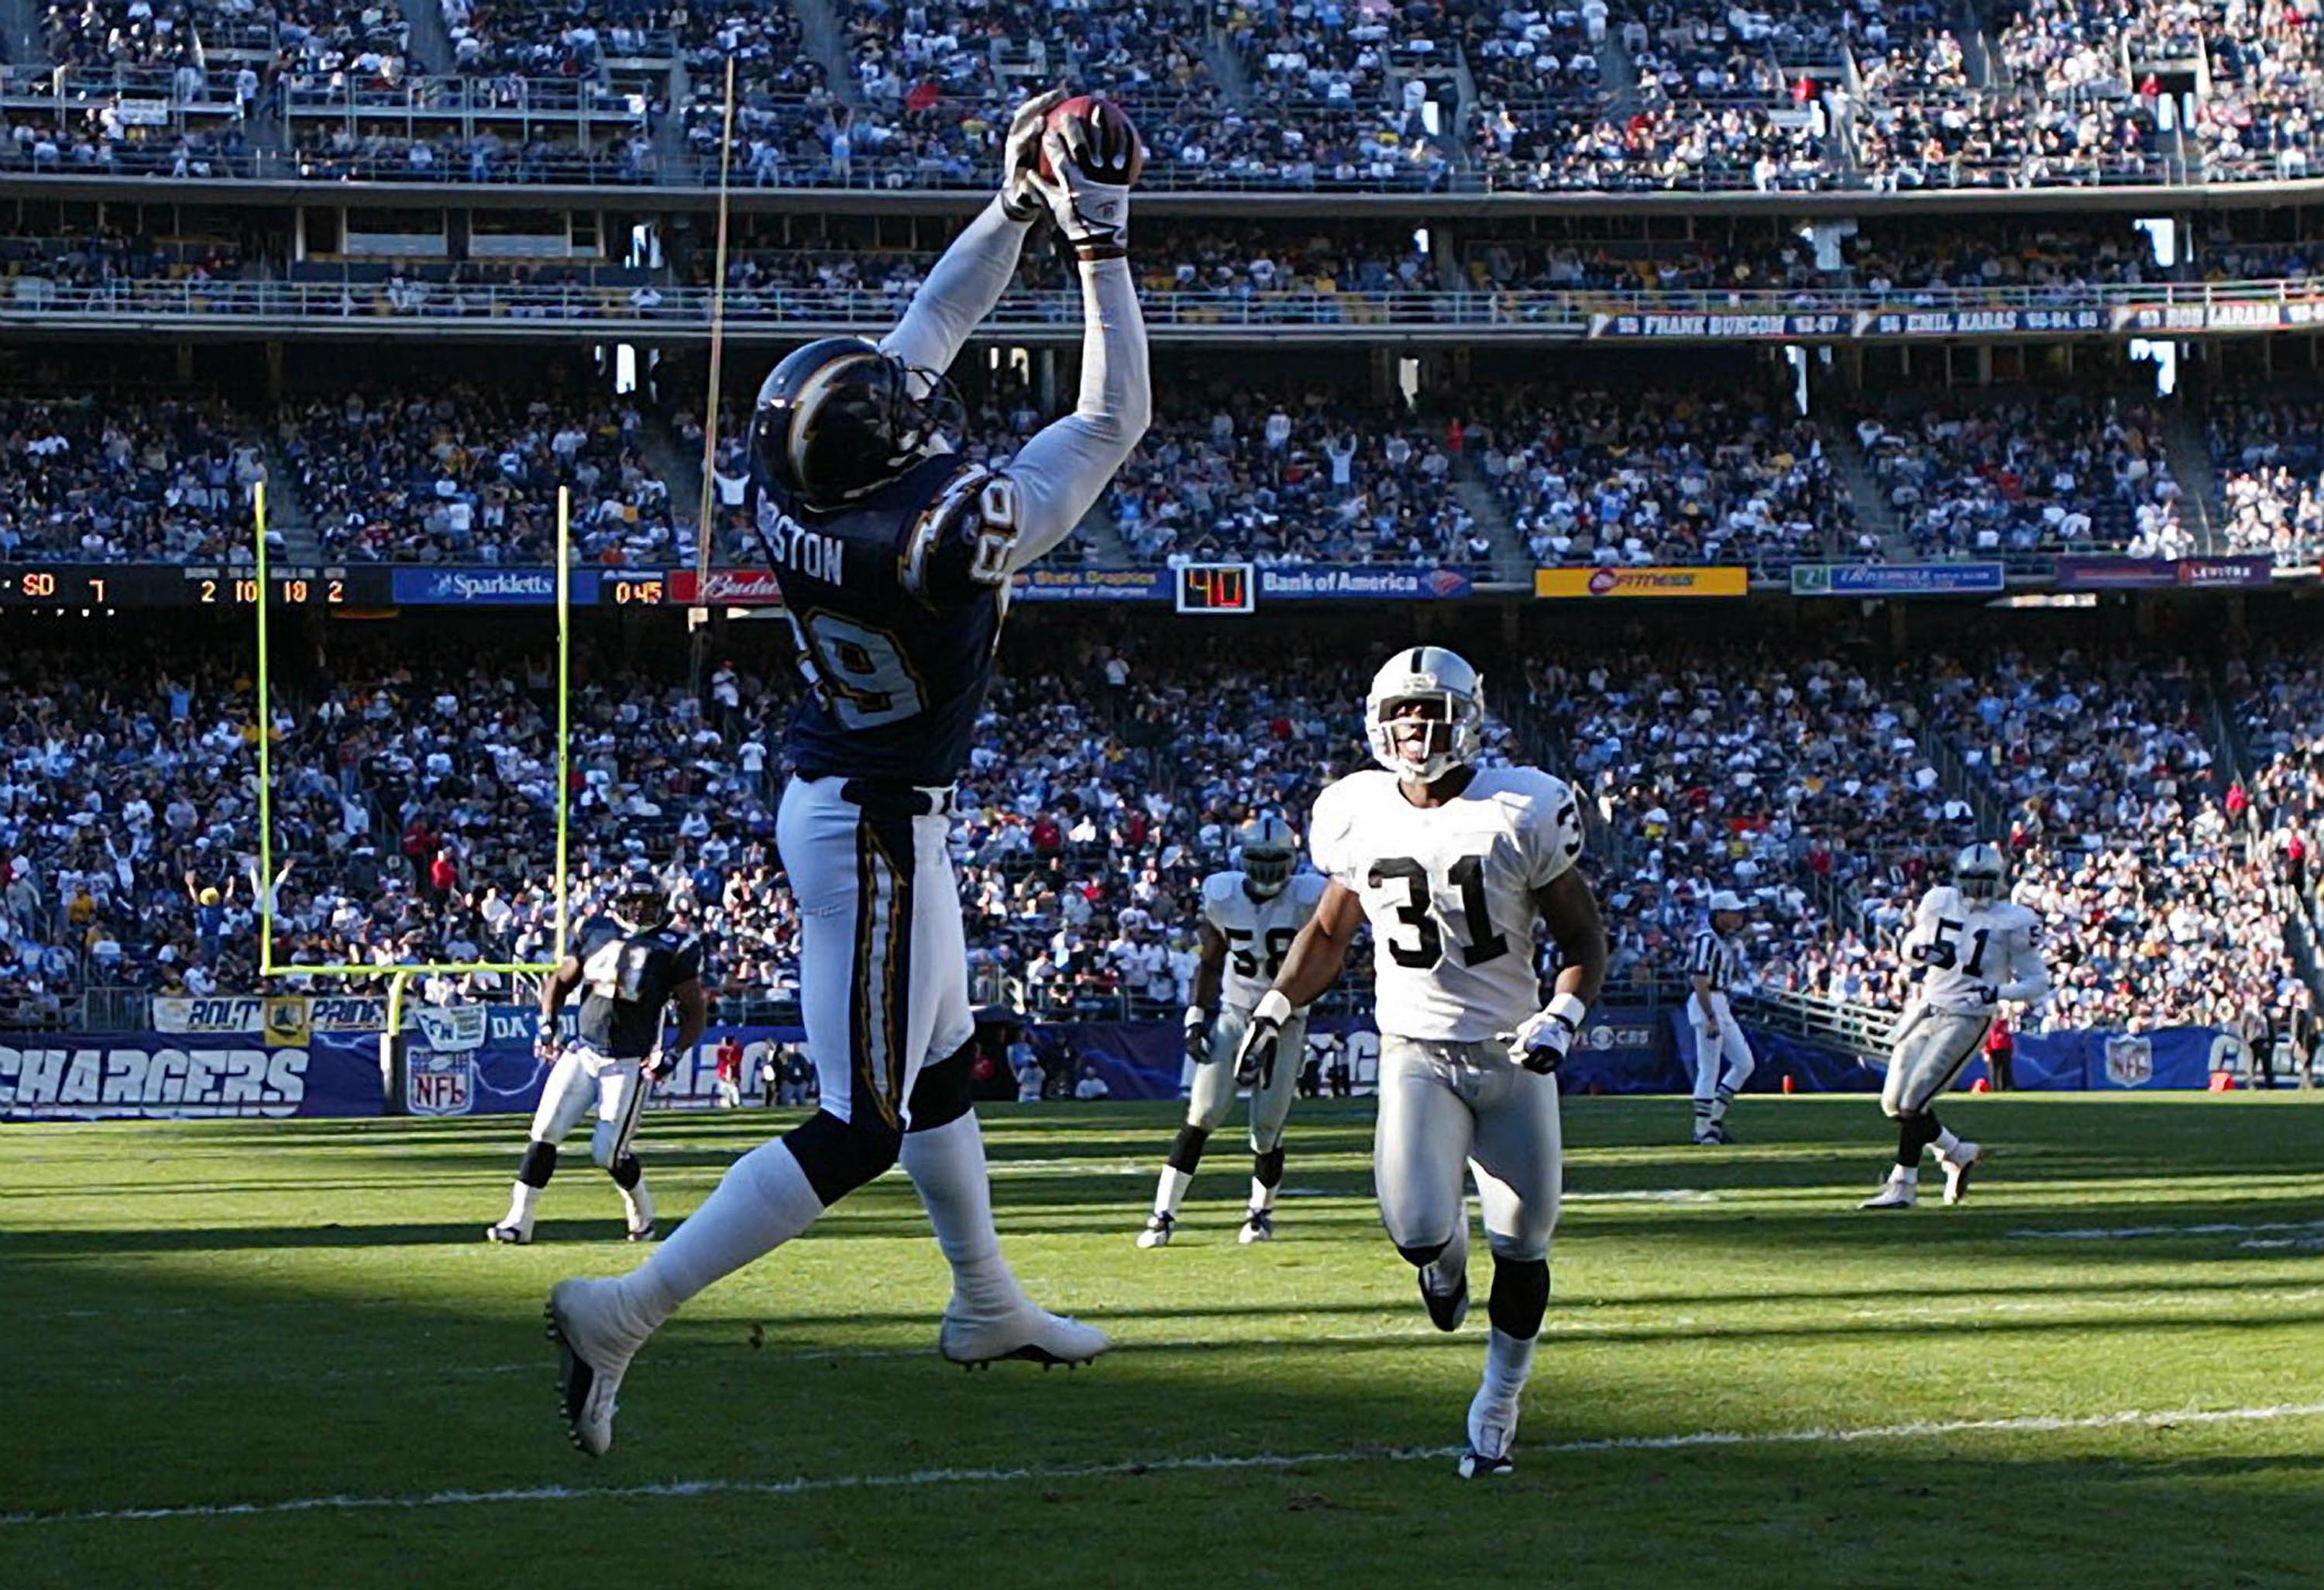 SAN DIEGO - DECEMBER 28: Wide Reciever David Boston #89 of the San Diego Chargers hauls in a touchdown pass as Phillip Buchanon #31 of the Oakland Raiders looks on in the 1st half  during their NFL  game on December 28, 2003 at Qualcomm Stadium in San Die